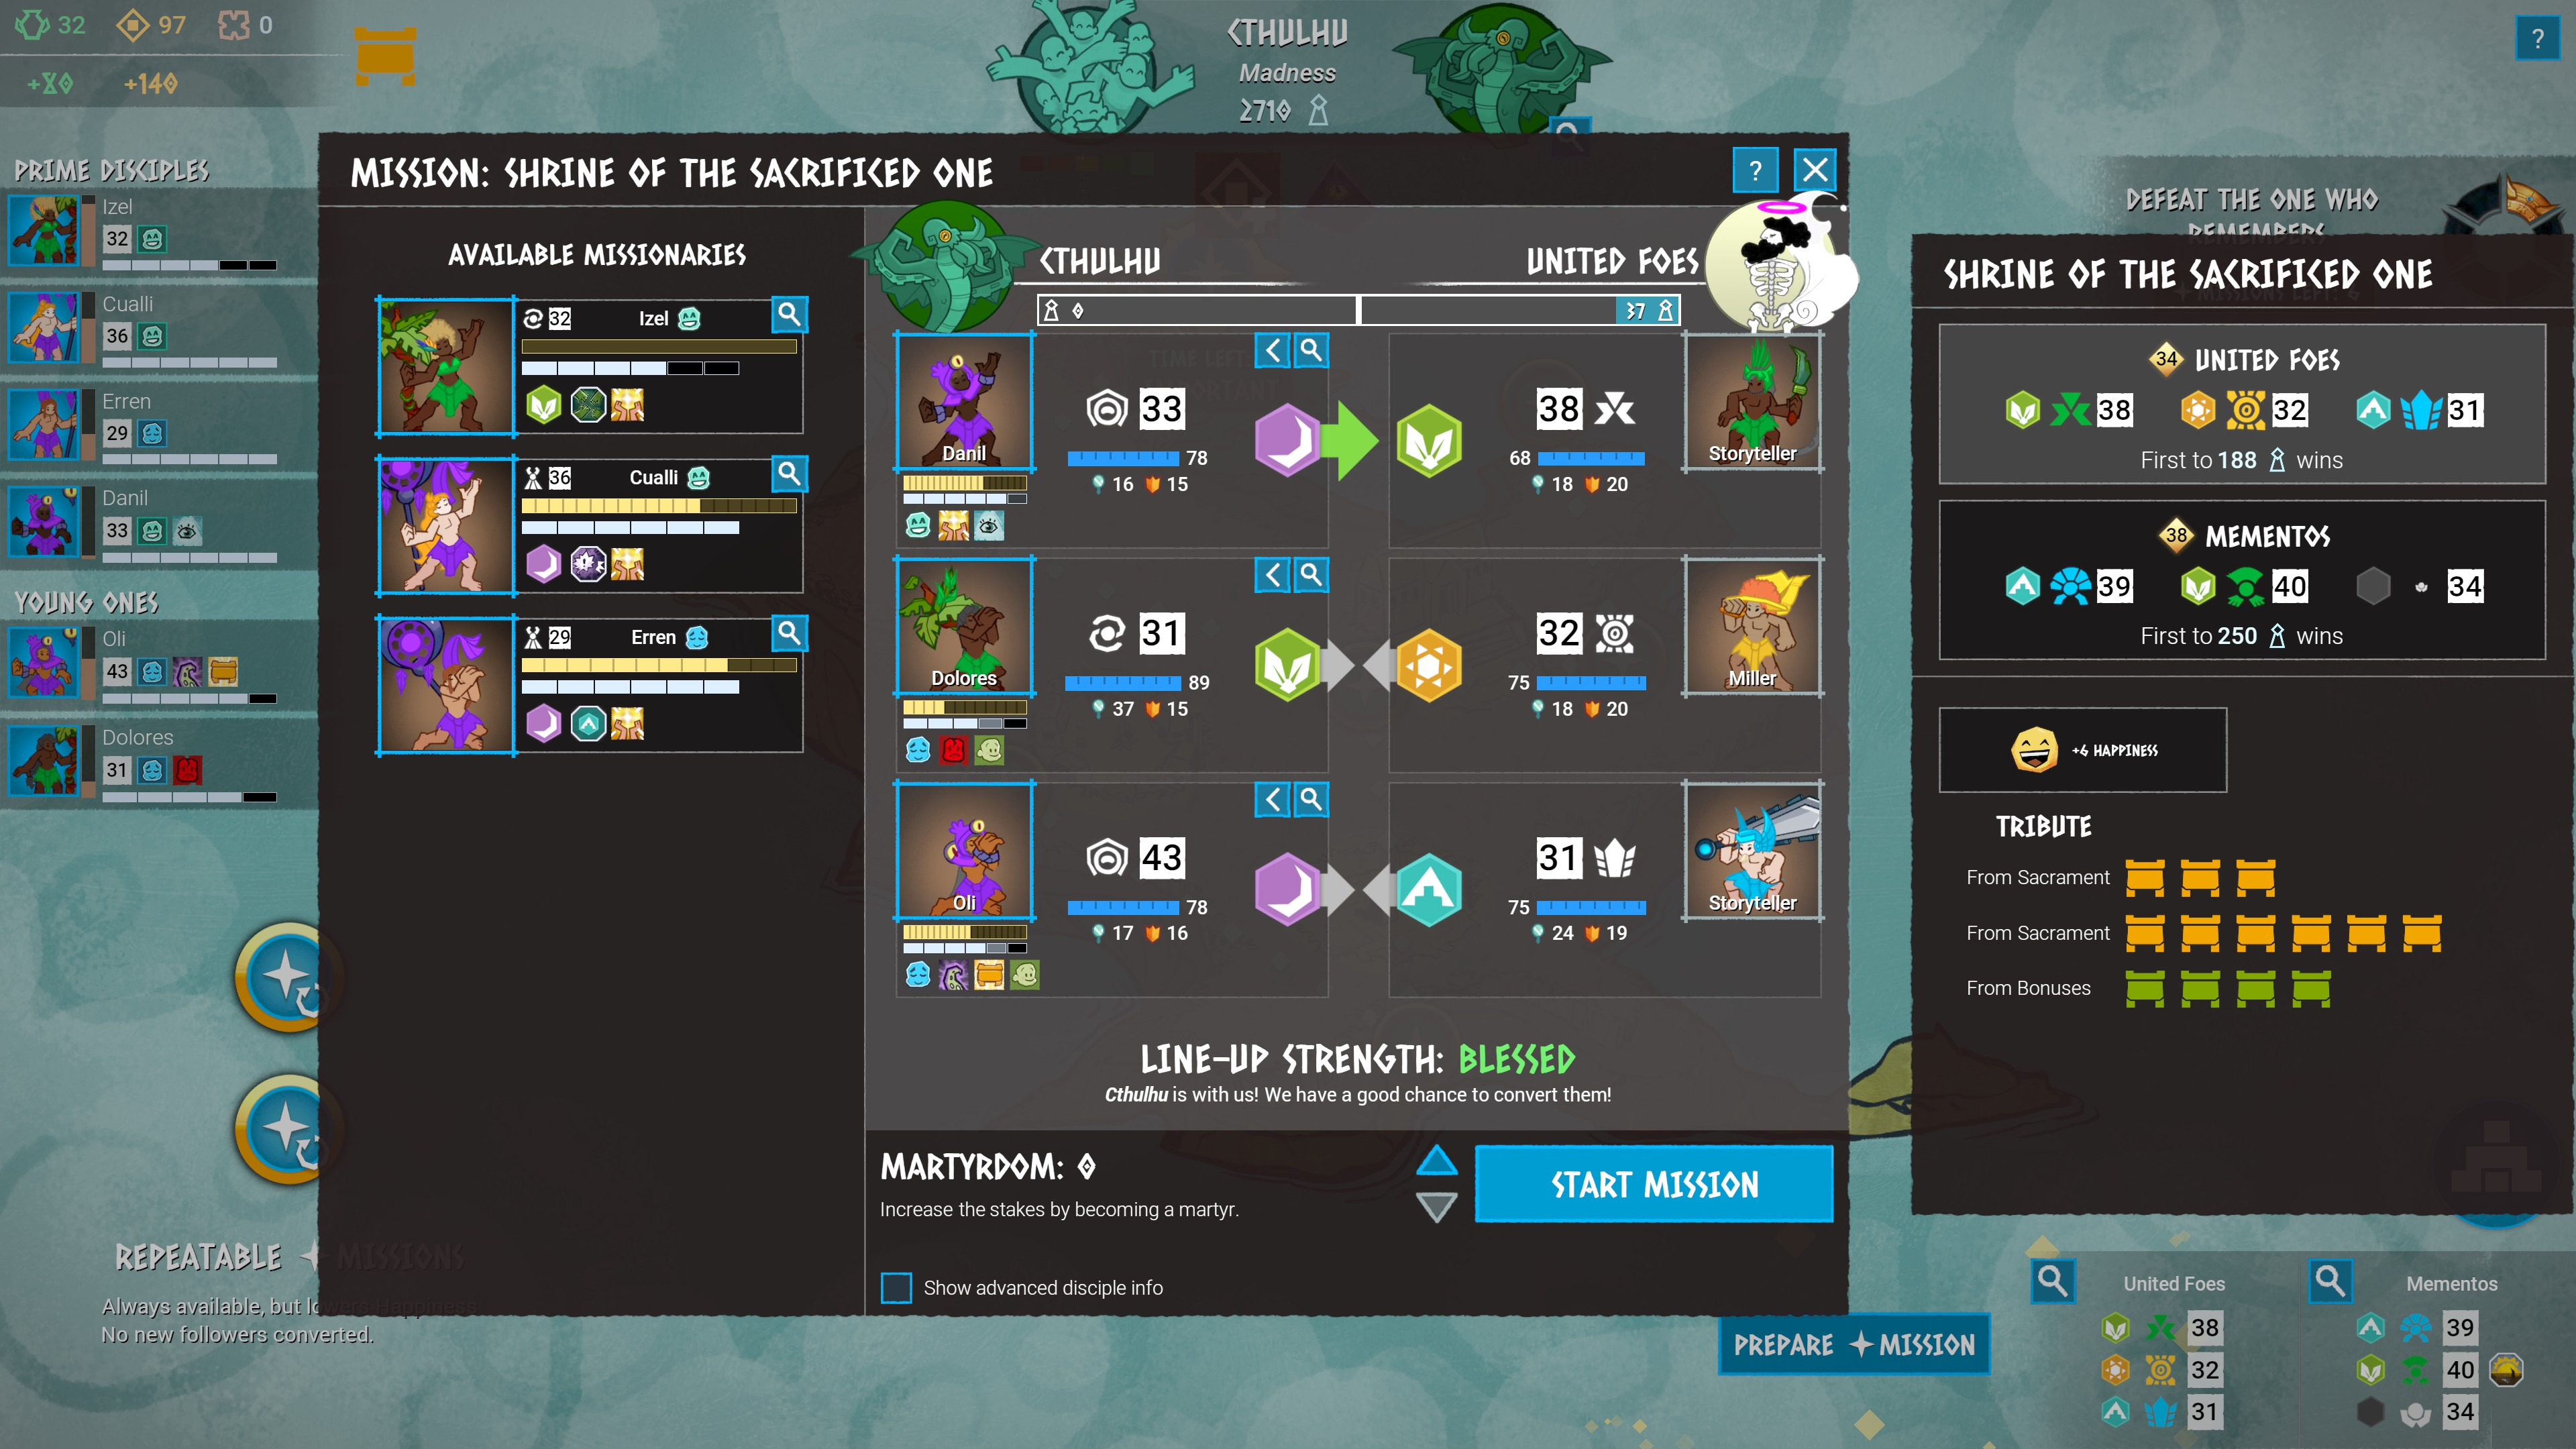 Godhood. Lining up a 3 versus 3 combat against an enemy with 3 different classes